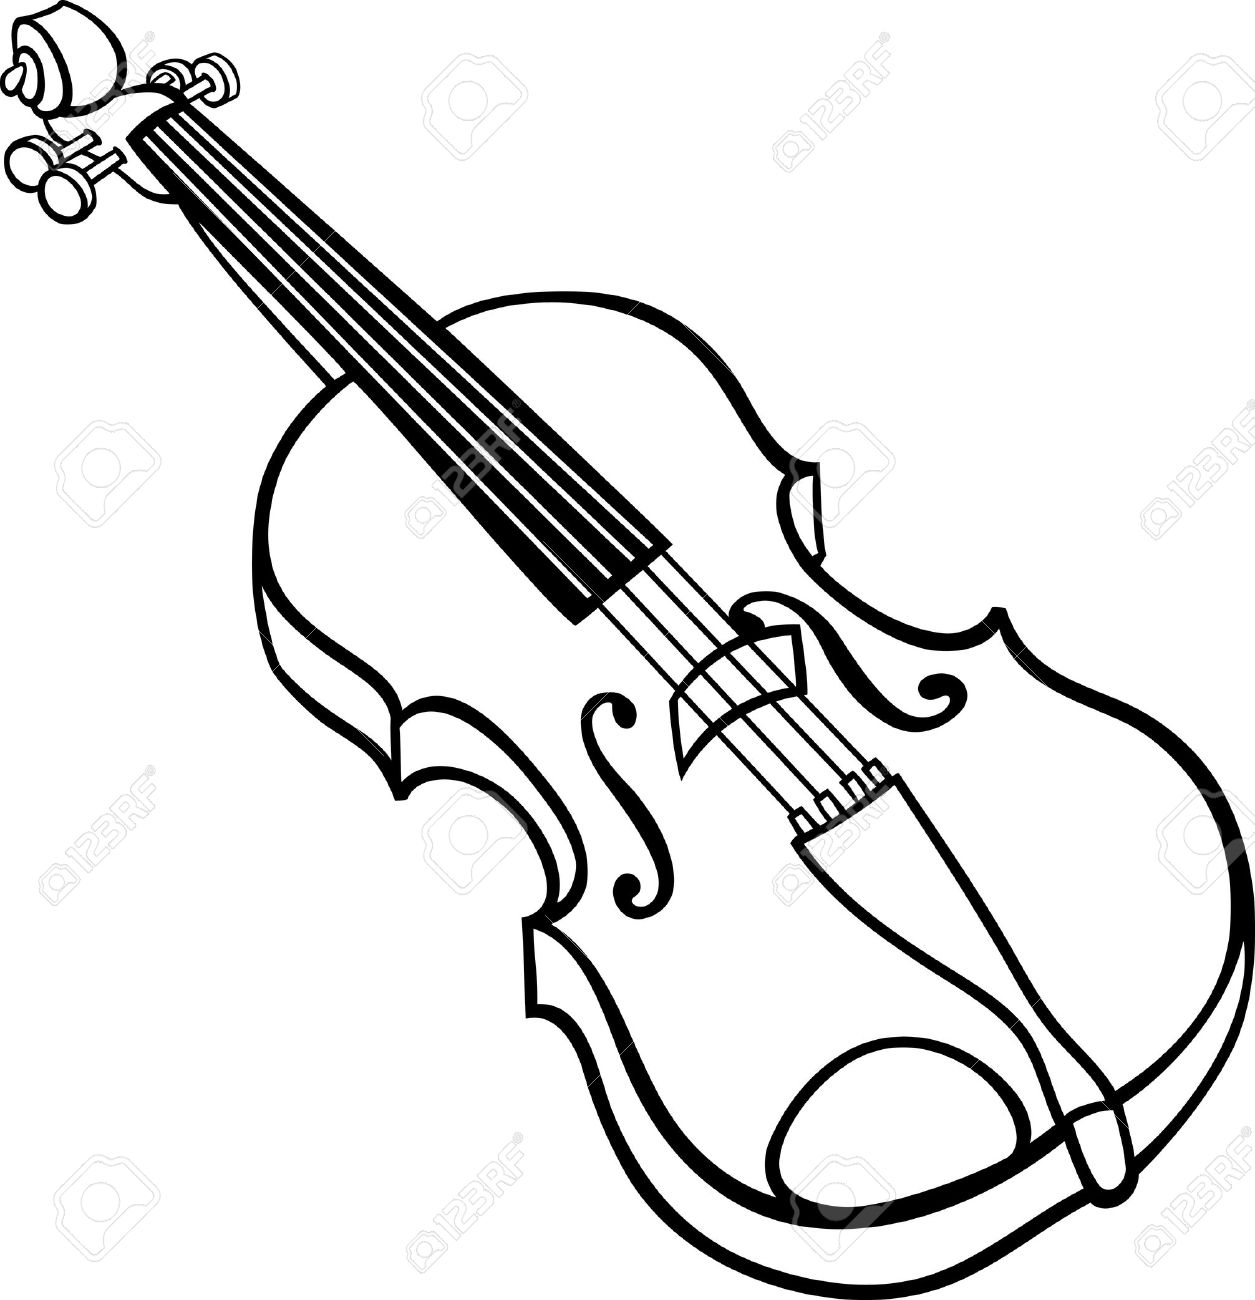 Black And White Cartoon Illustration Of Violin Musical Instrument Clip Art  For Coloring Book Stock Vector